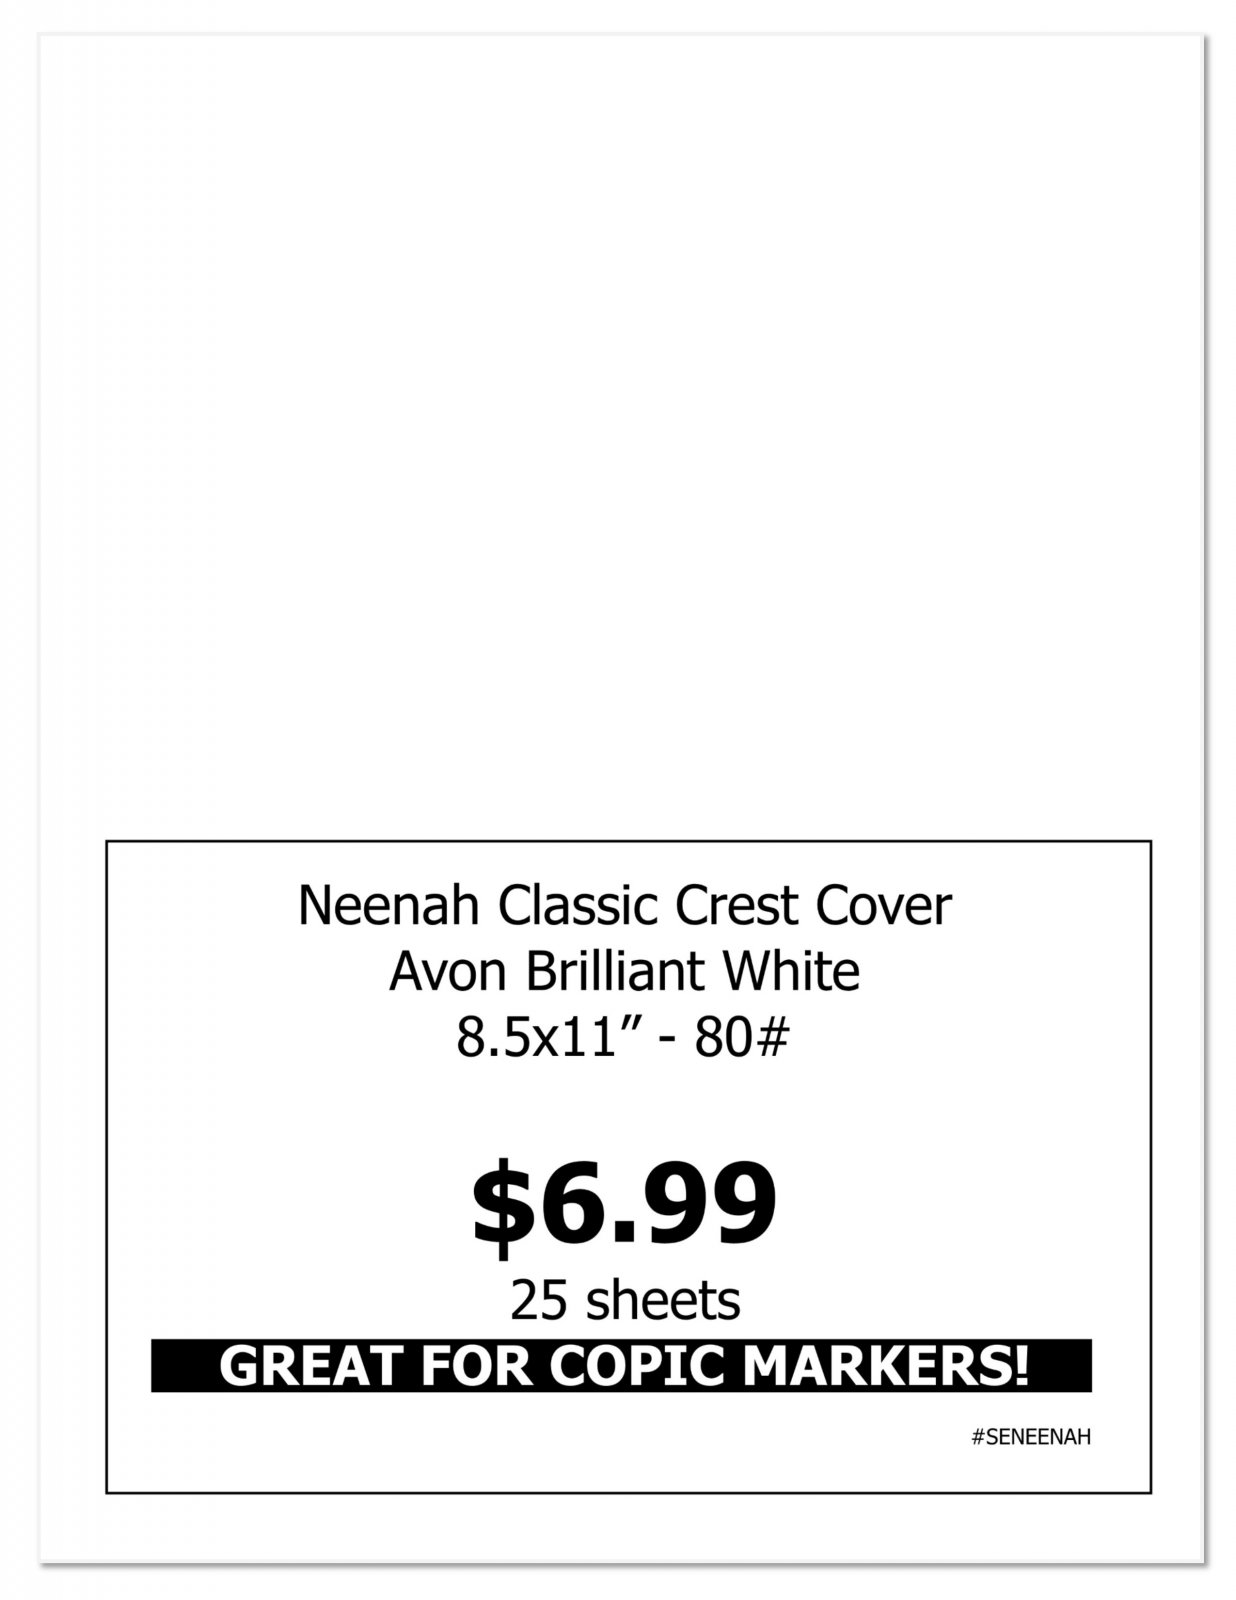 Neenah Classic Crest Cover Pack - Great for Copic Coloring!